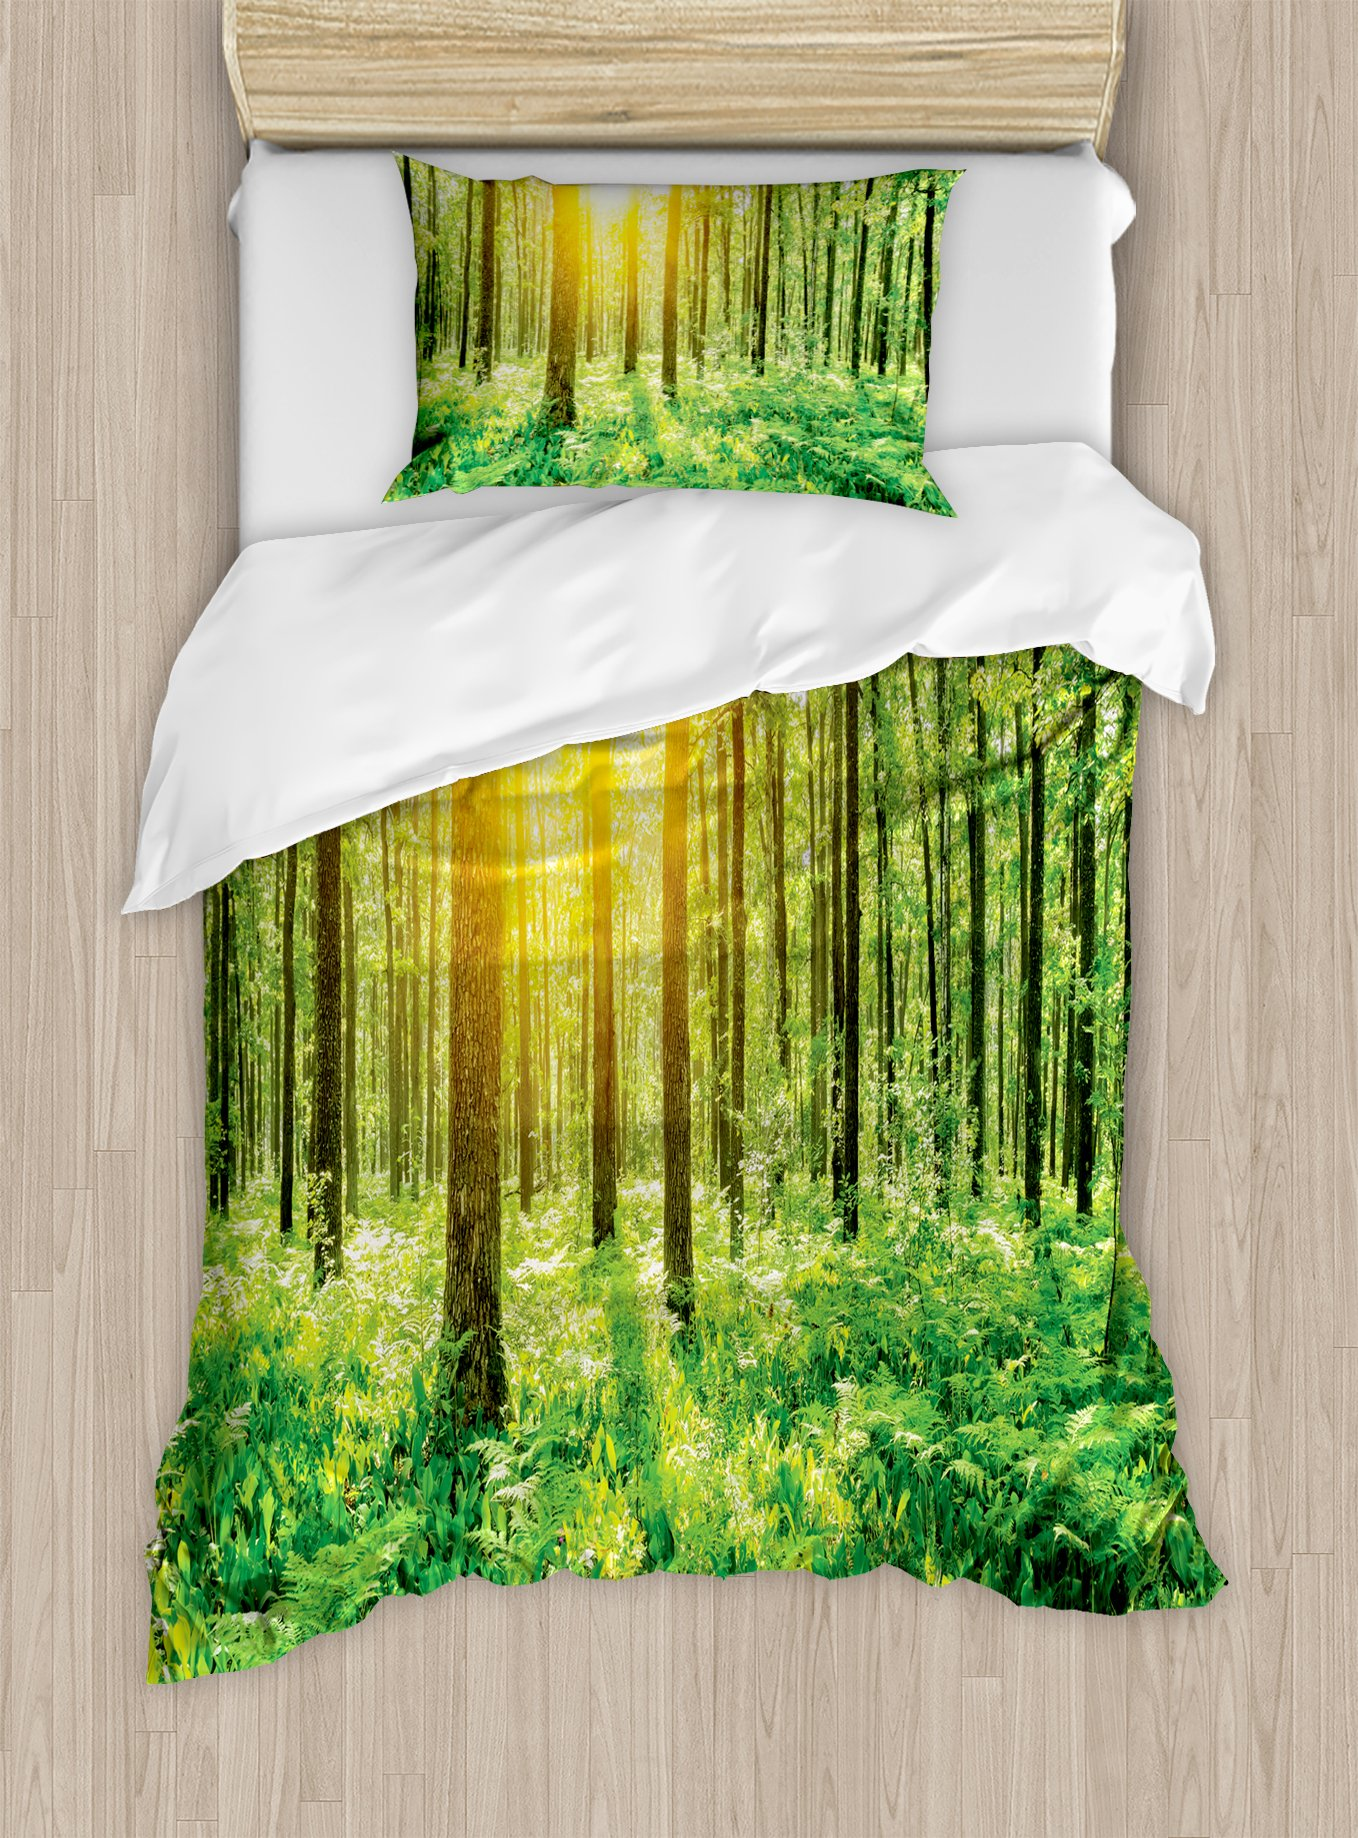 Ambesonne Woodland Duvet Cover Set Twin Size, Forest Springtime Freshness Theme Foliage Sunbeams Sunrise Nature View Scene, Decorative 2 Piece Bedding Set with 1 Pillow Sham, Green Yellow